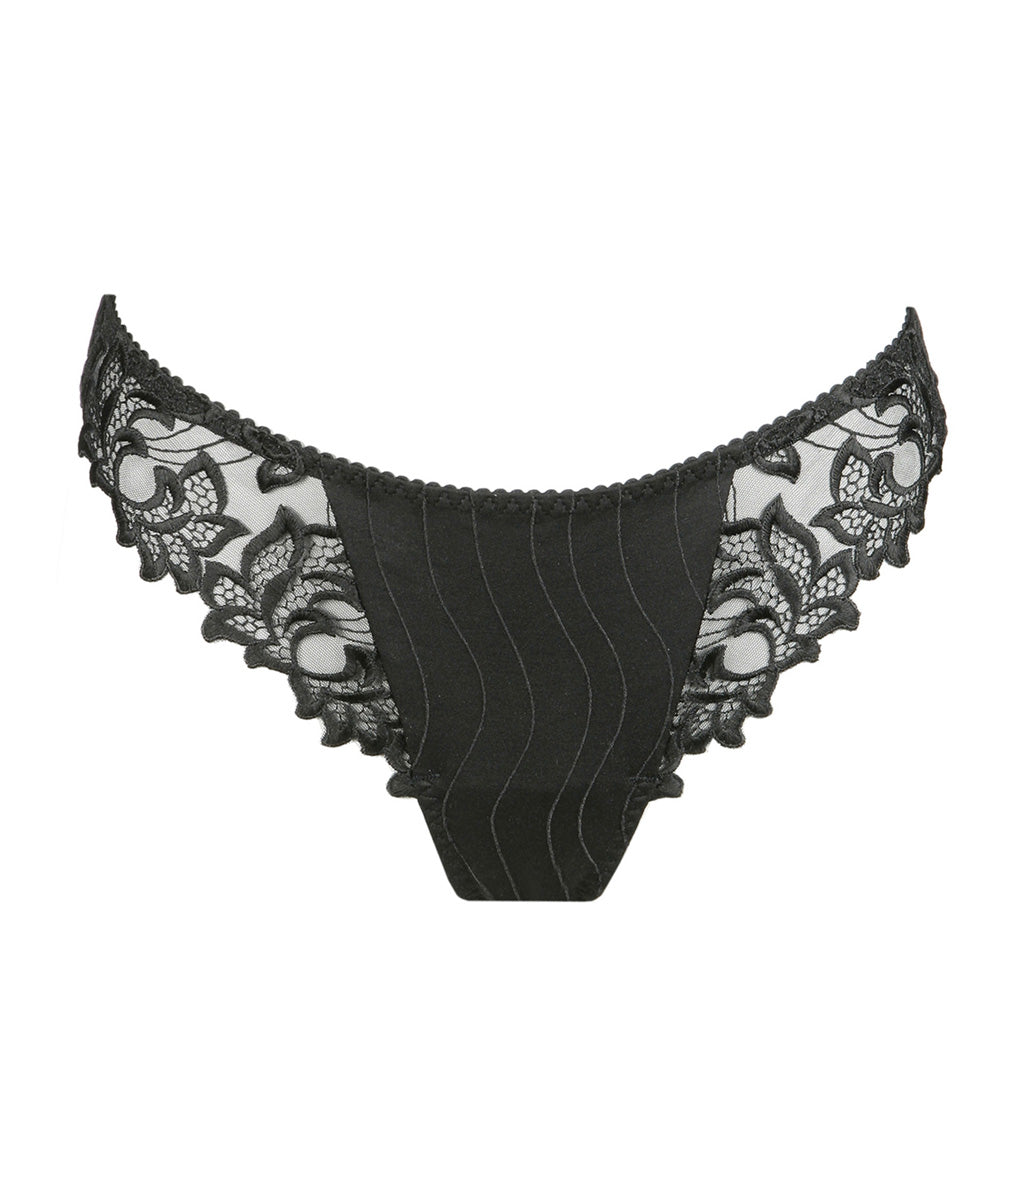 PrimaDonna 'Deauville' (Black) Thong - Sandra Dee - Product Shot - Front